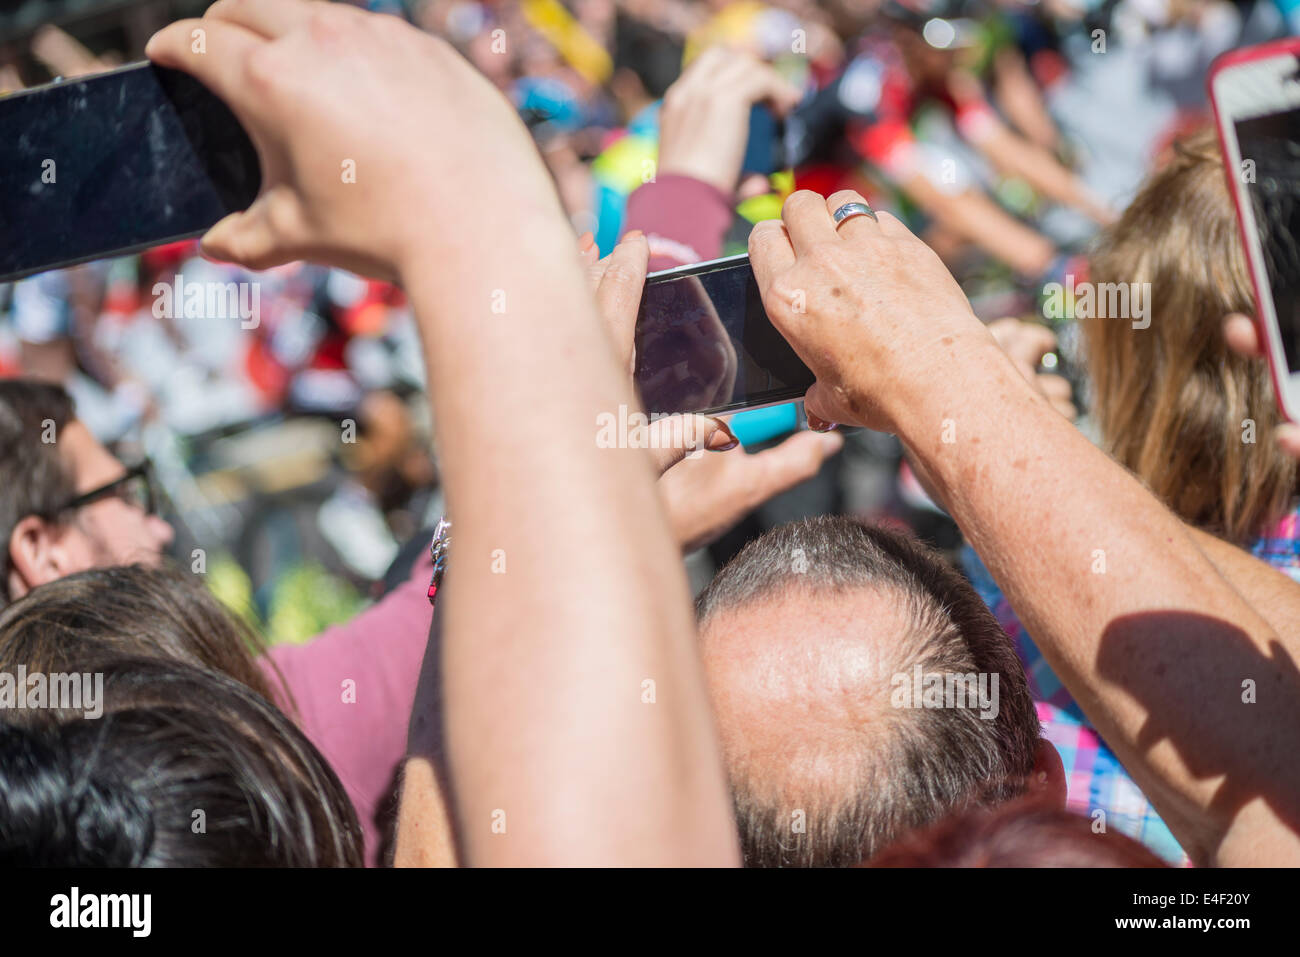 spectators with cameraphones - Stock Image